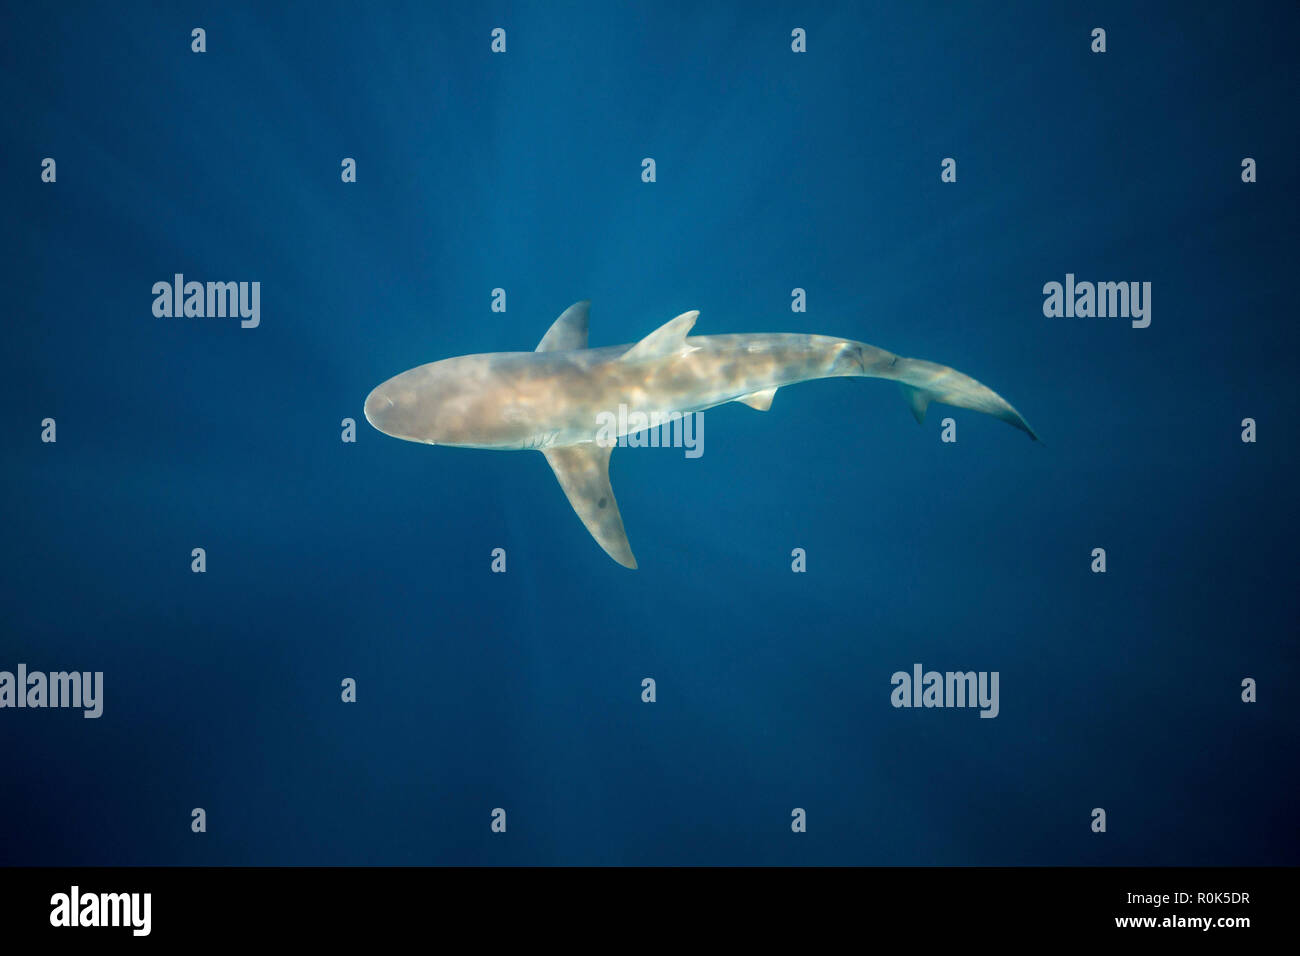 A dusky shark in the blue waters of South Africa. - Stock Image